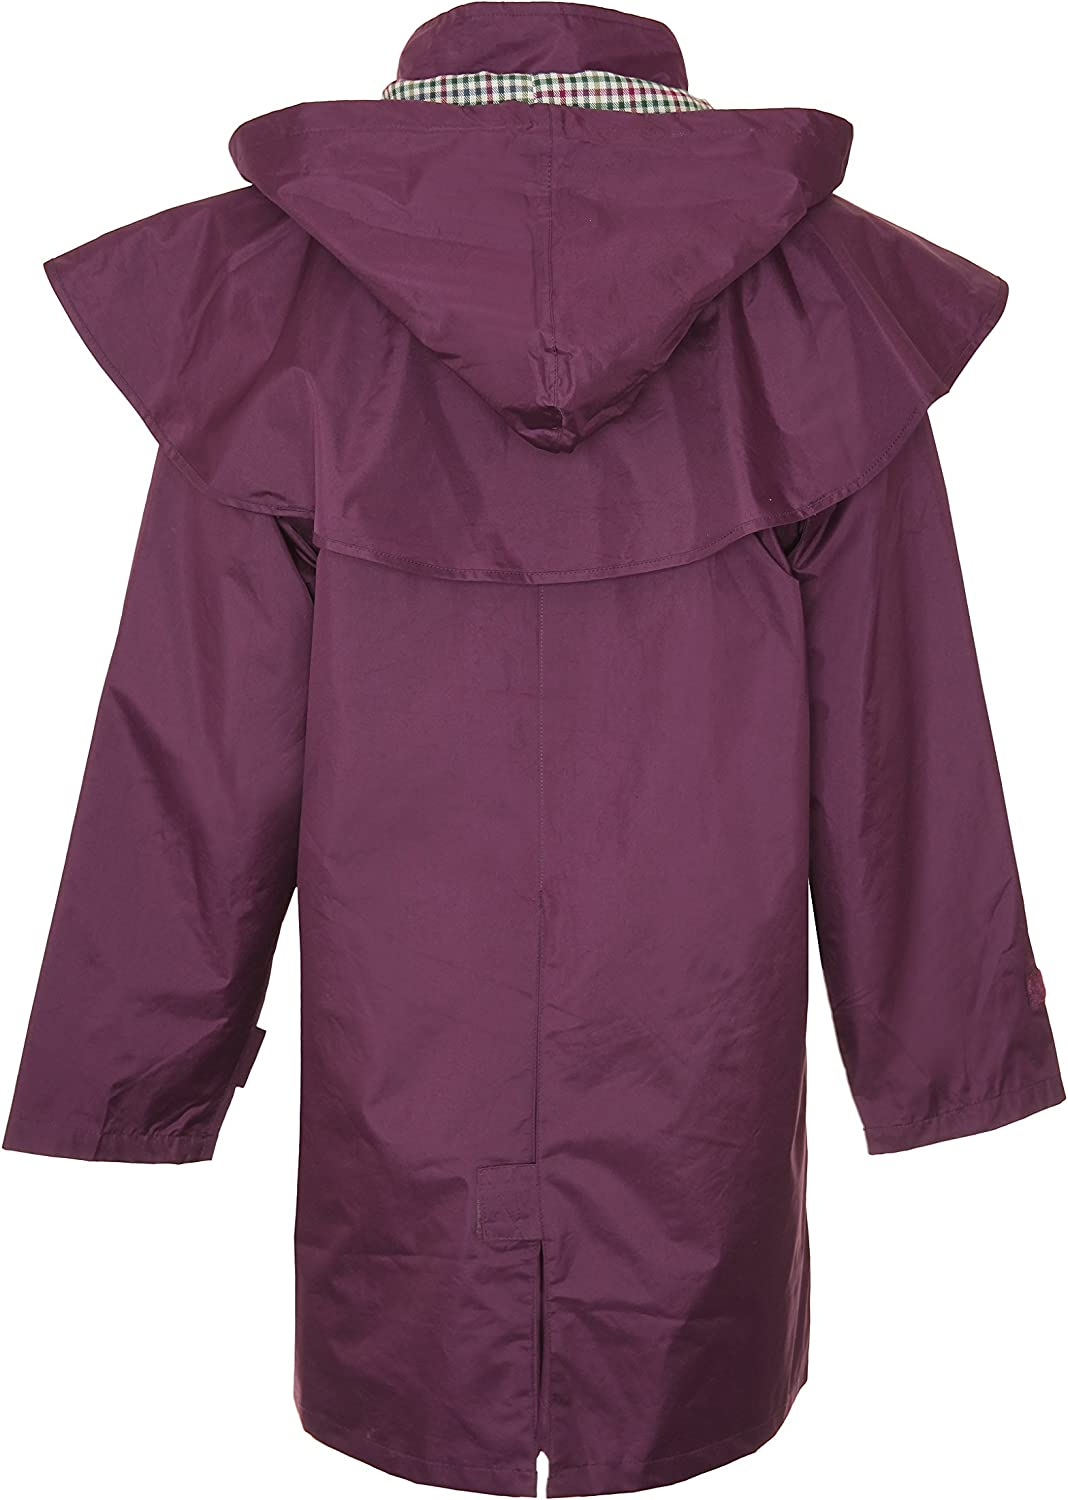 Country Estate Ladies Windsor Waterproof Fabric Lightweight Lined Riding Cape Coat Jacket Trench Coats Macs Lined Detachable Hood Taped Seams Walking Outdoors Countrywear Plum Size 12